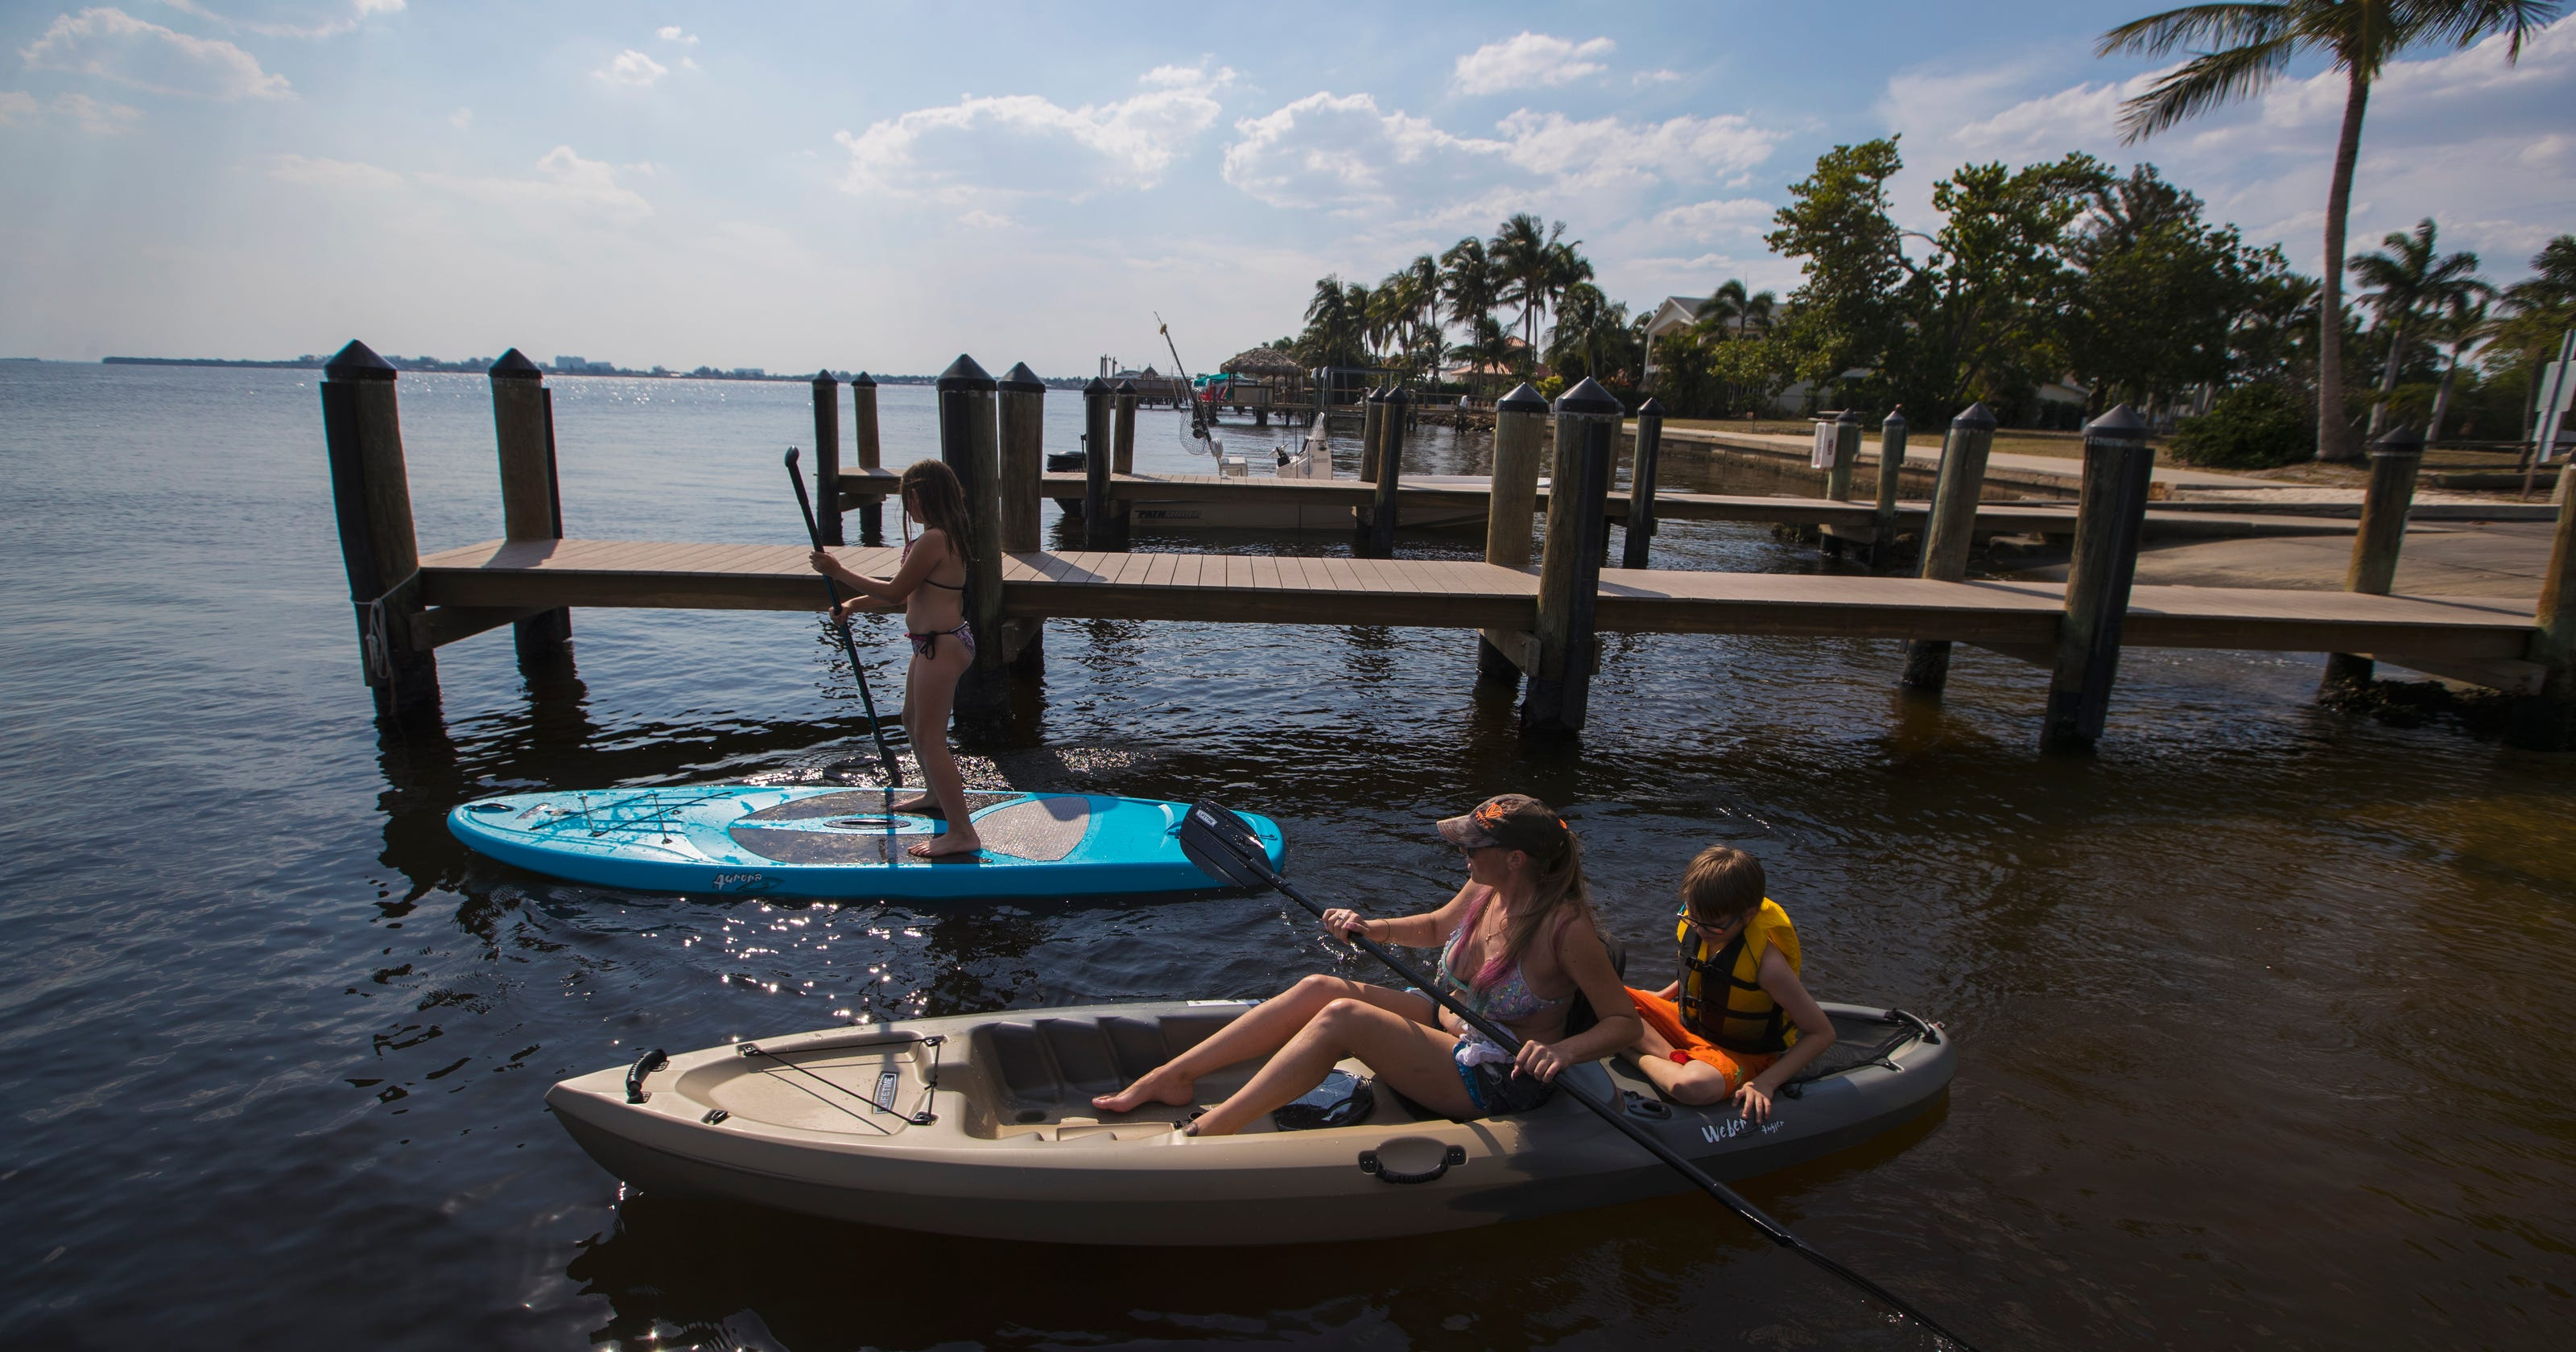 5 boat launches, 5 free ways to get on water in Cape Coral